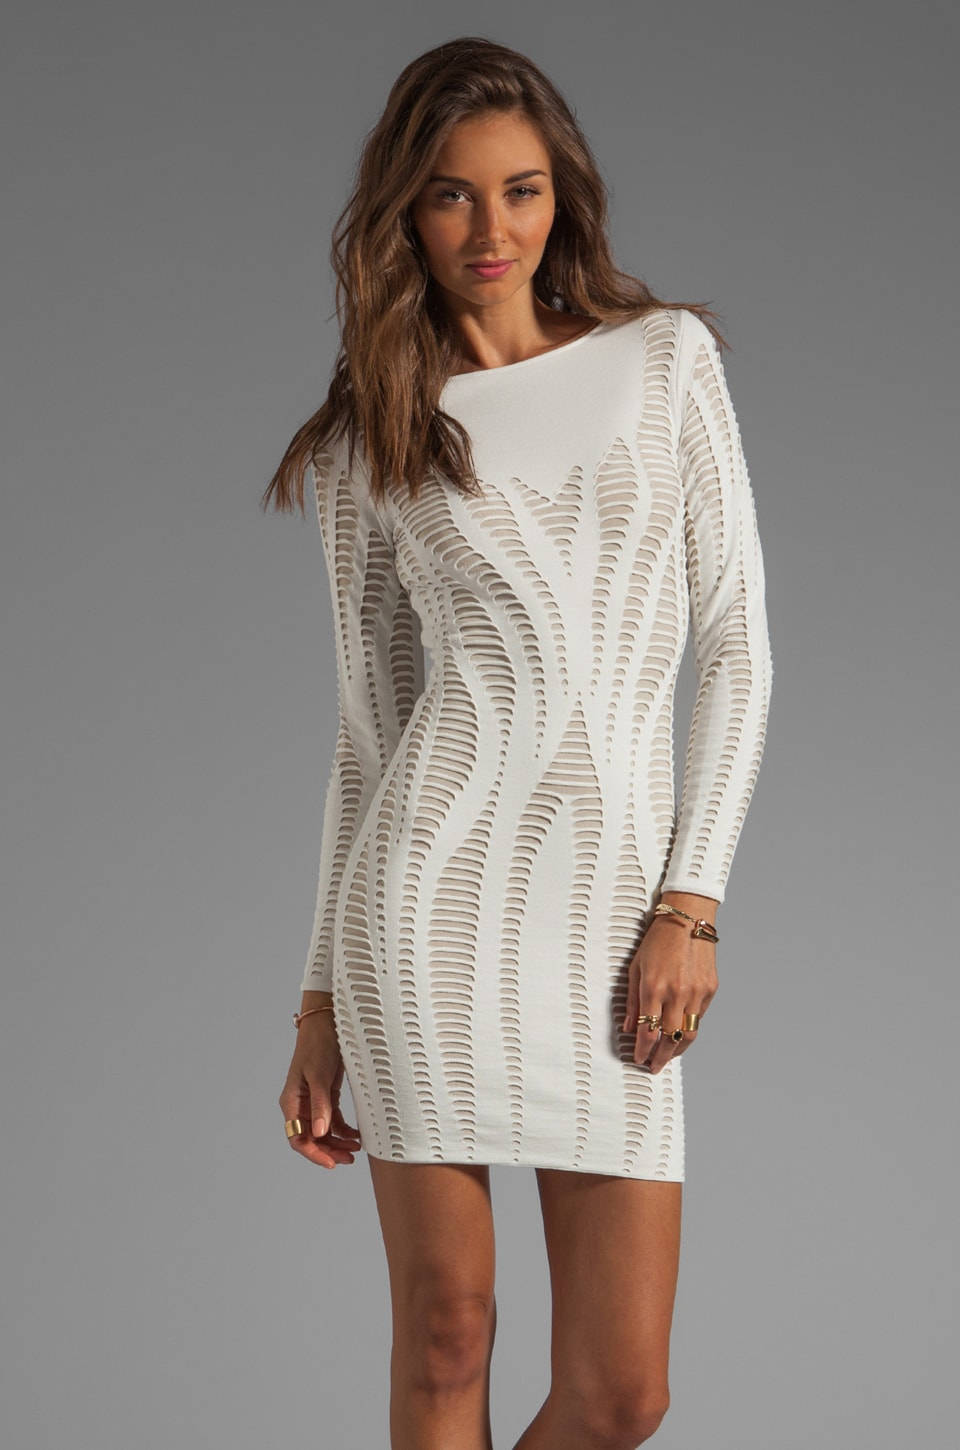 RVN Cutout Illusion Jacquard Long Sleeve Dress in White/Sand